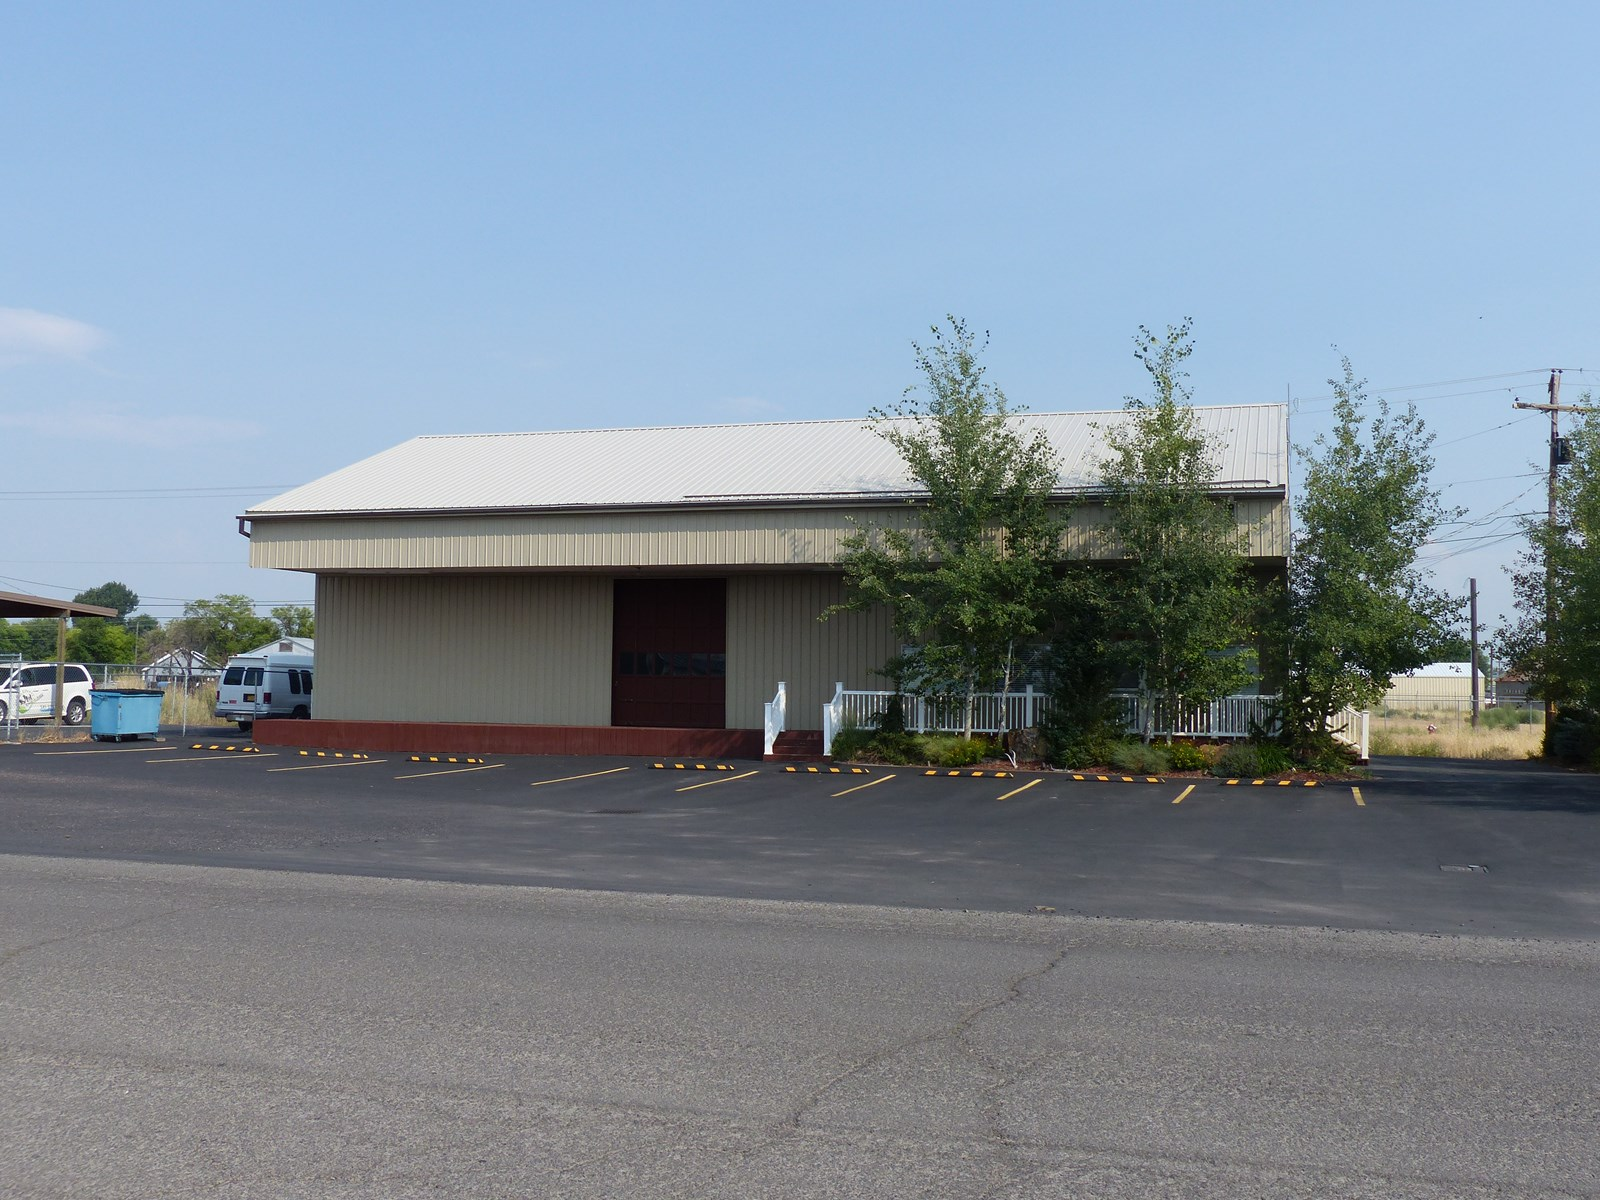 BURNS, OR - WAREHOUSE FOR SALE - MANY AMENITIES